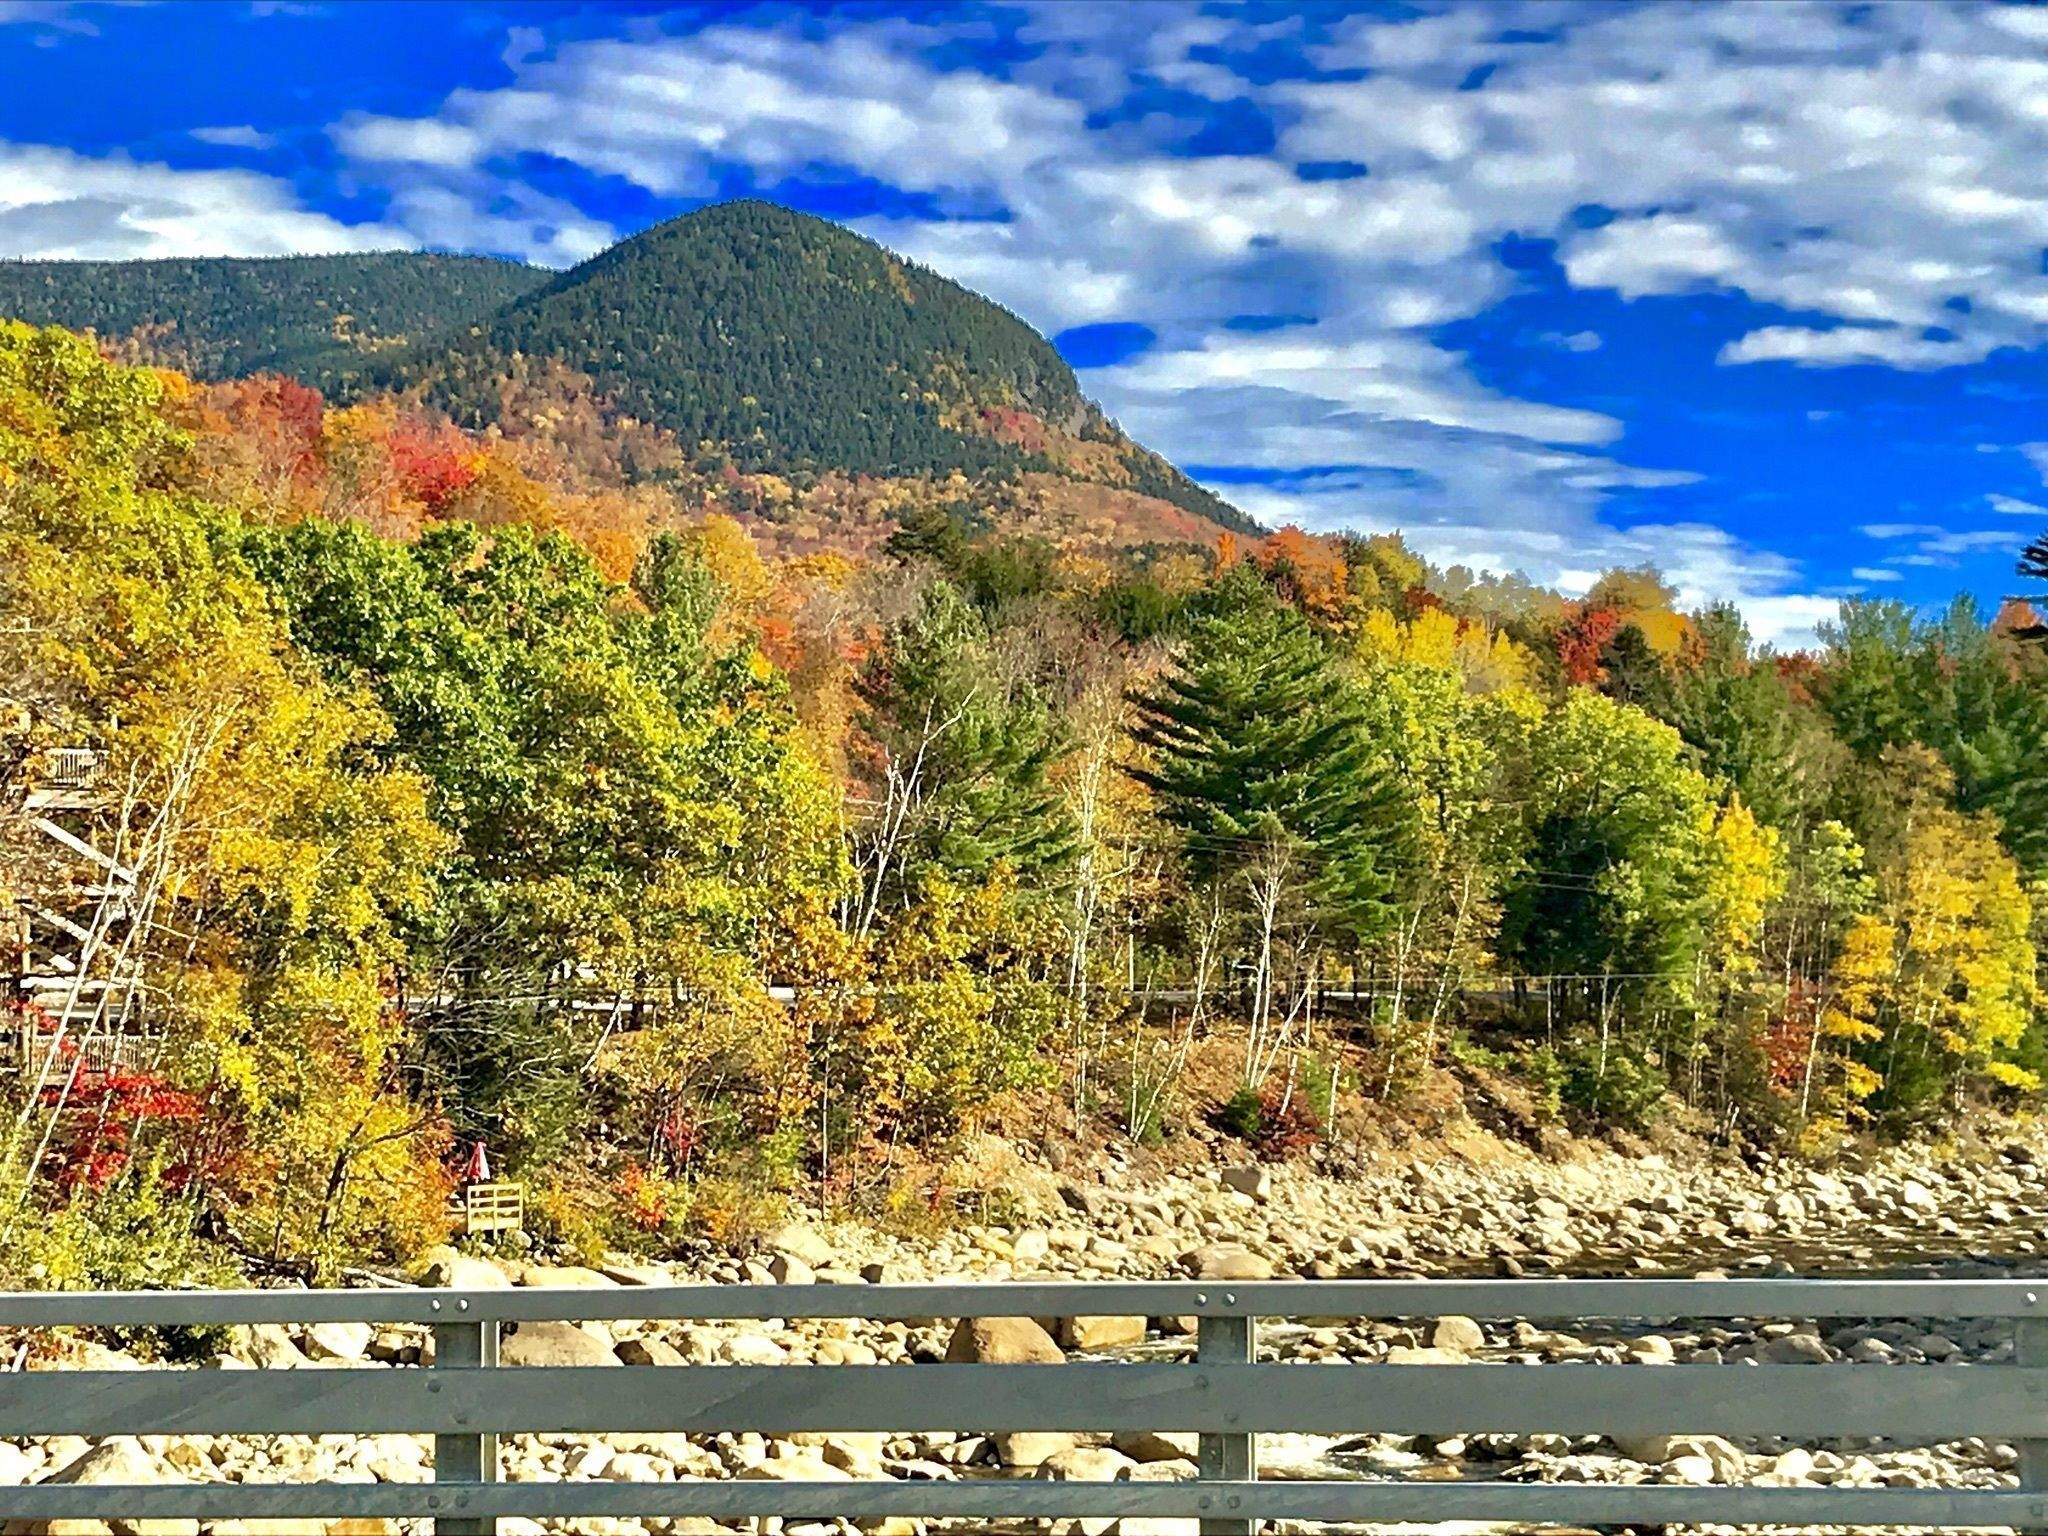 Kancamagus Highway Scenic Drive - New Hampshire | AllTrails on cassiar highway map, connecticut map, ventura highway map, yukon highway map, atlanta highway map, top of the world highway map, the devil's highway map, mount washington map, flume gorge map, blue ridge highway map, new england map, jefferson highway map, sea to sky highway map, hawaii highway map, gunnison road scenic byway map, kangamangus highway nh map, west coast highway map, white mountains map, loretto chapel map, denver highway map,